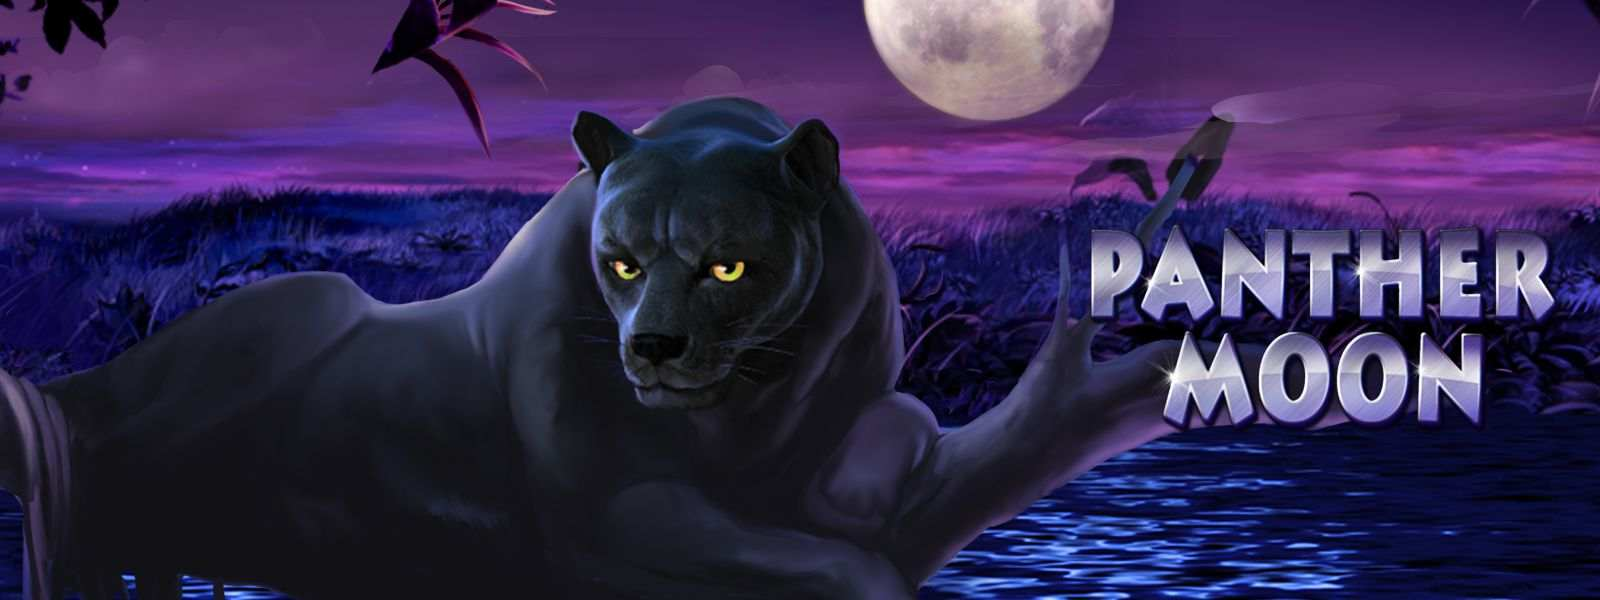 SCR888-panther-moon